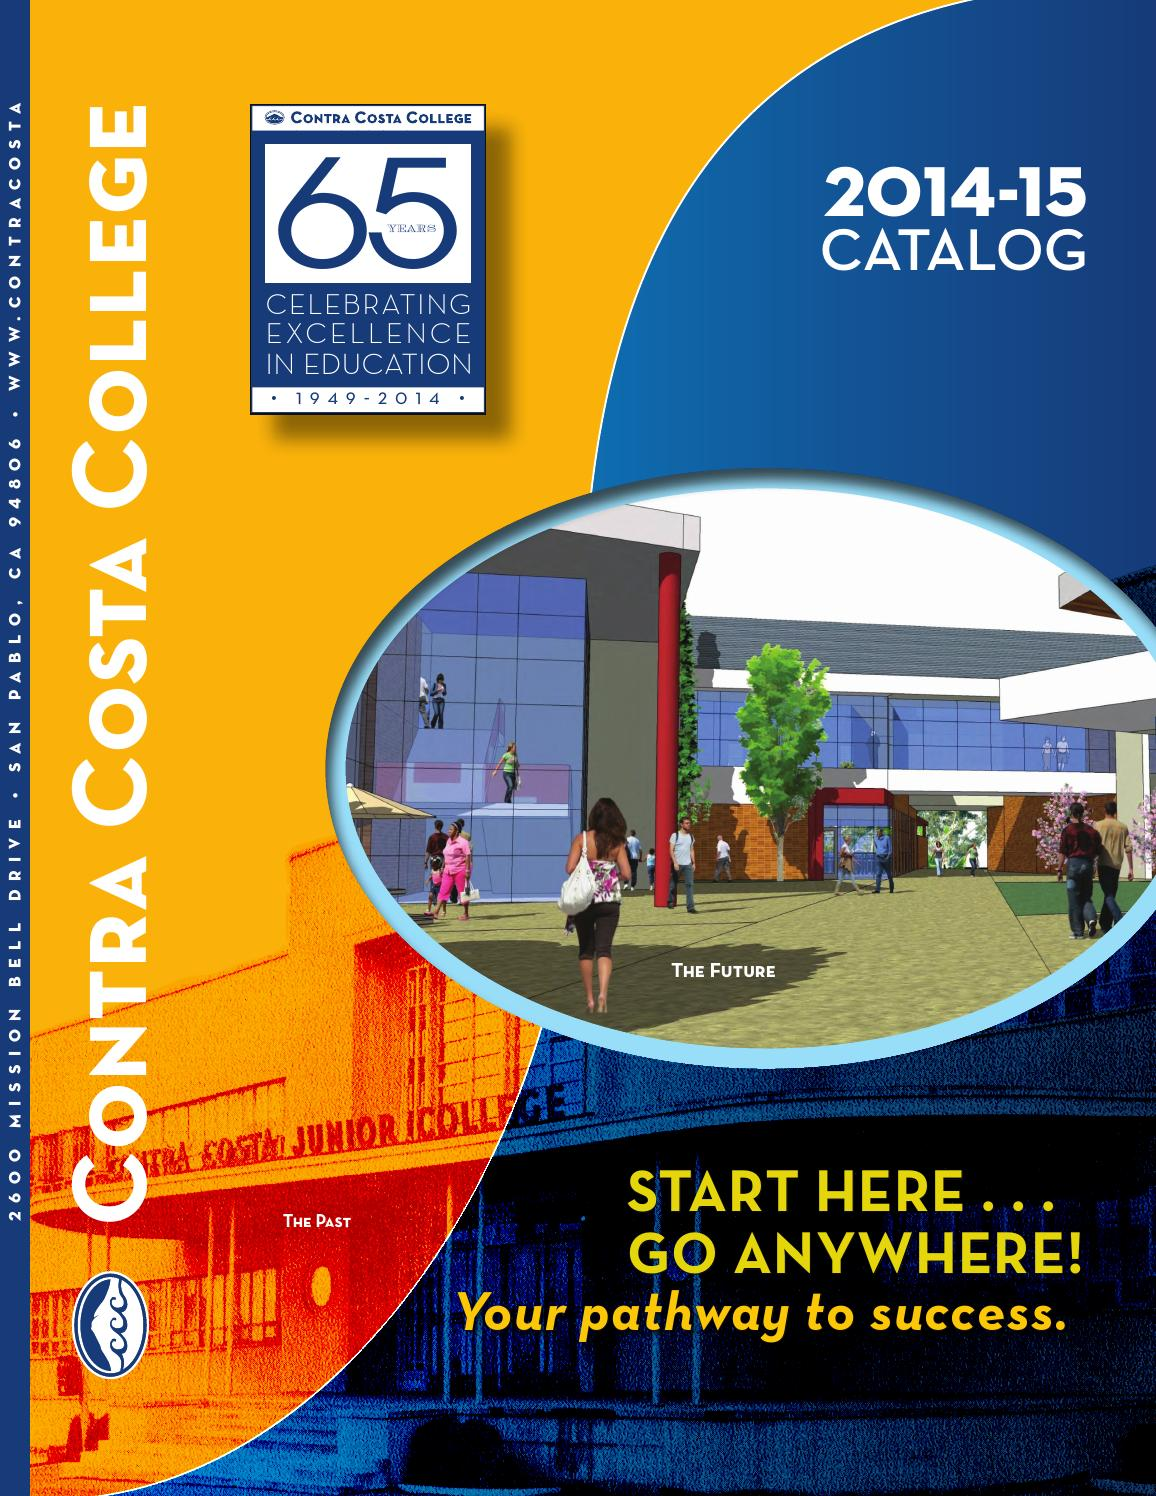 2014-2015 Catalog by Contra Costa College - issuu